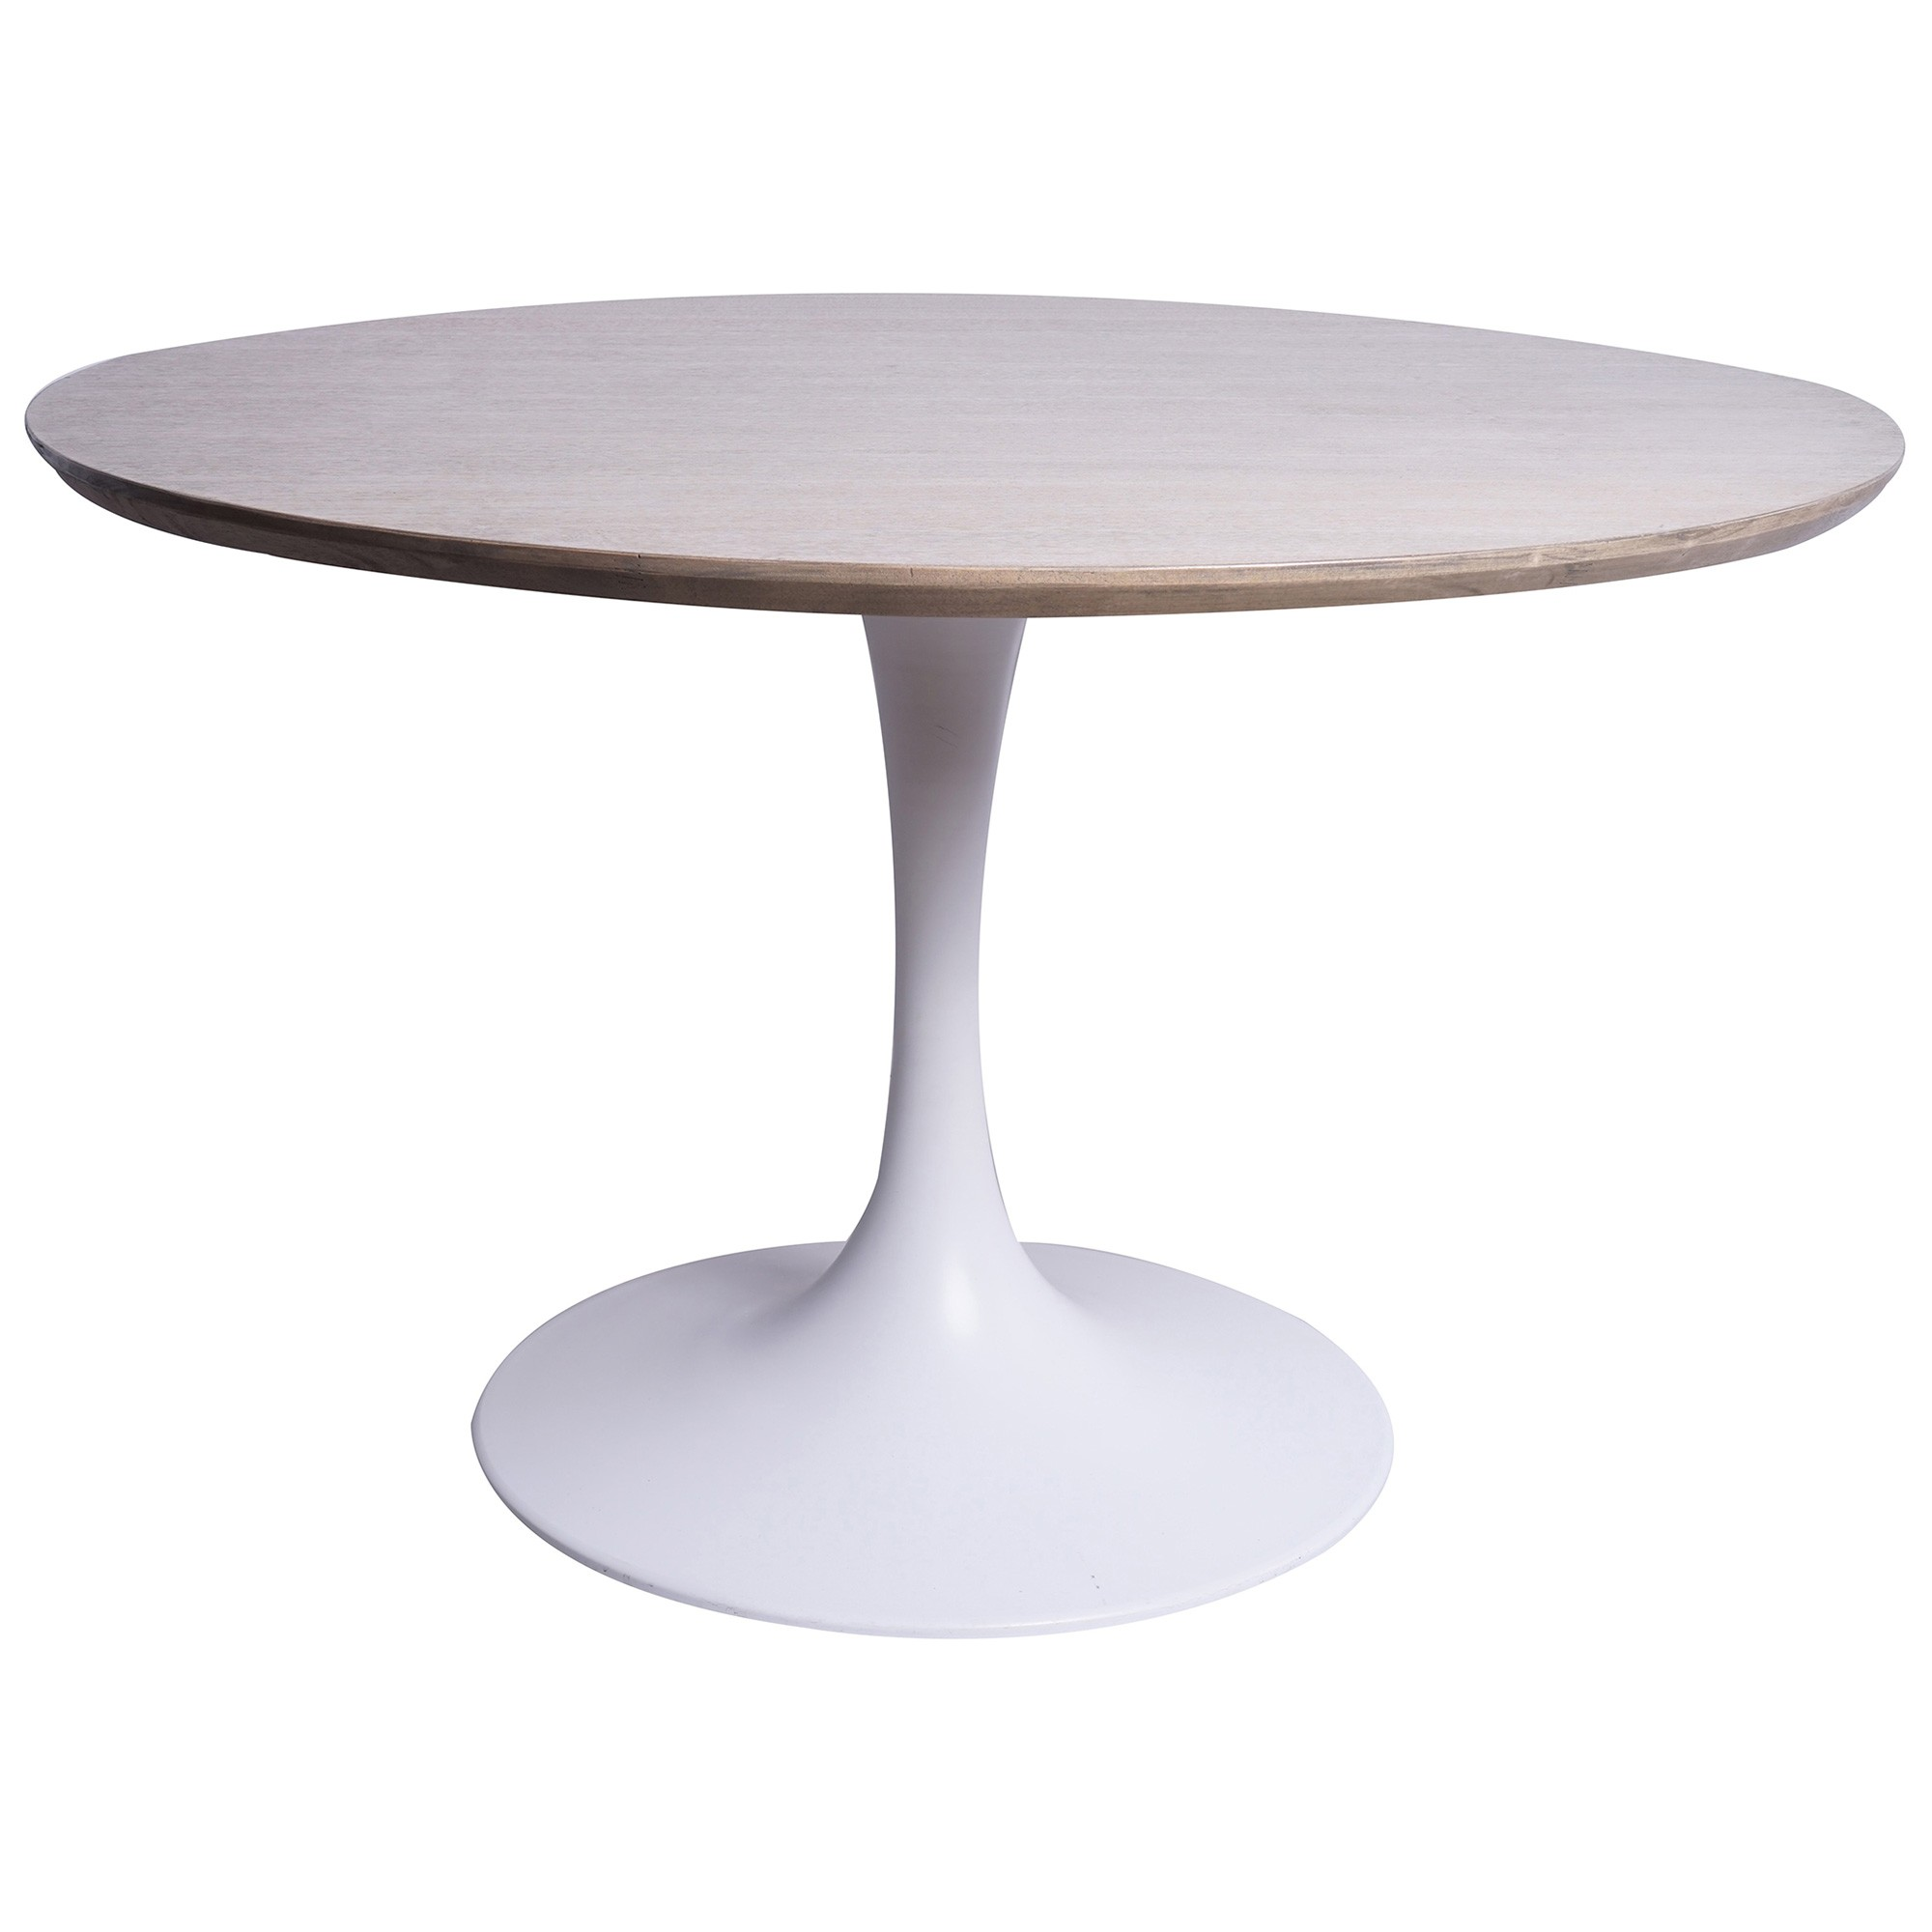 Trevalsa Round Dining Table, 120cm